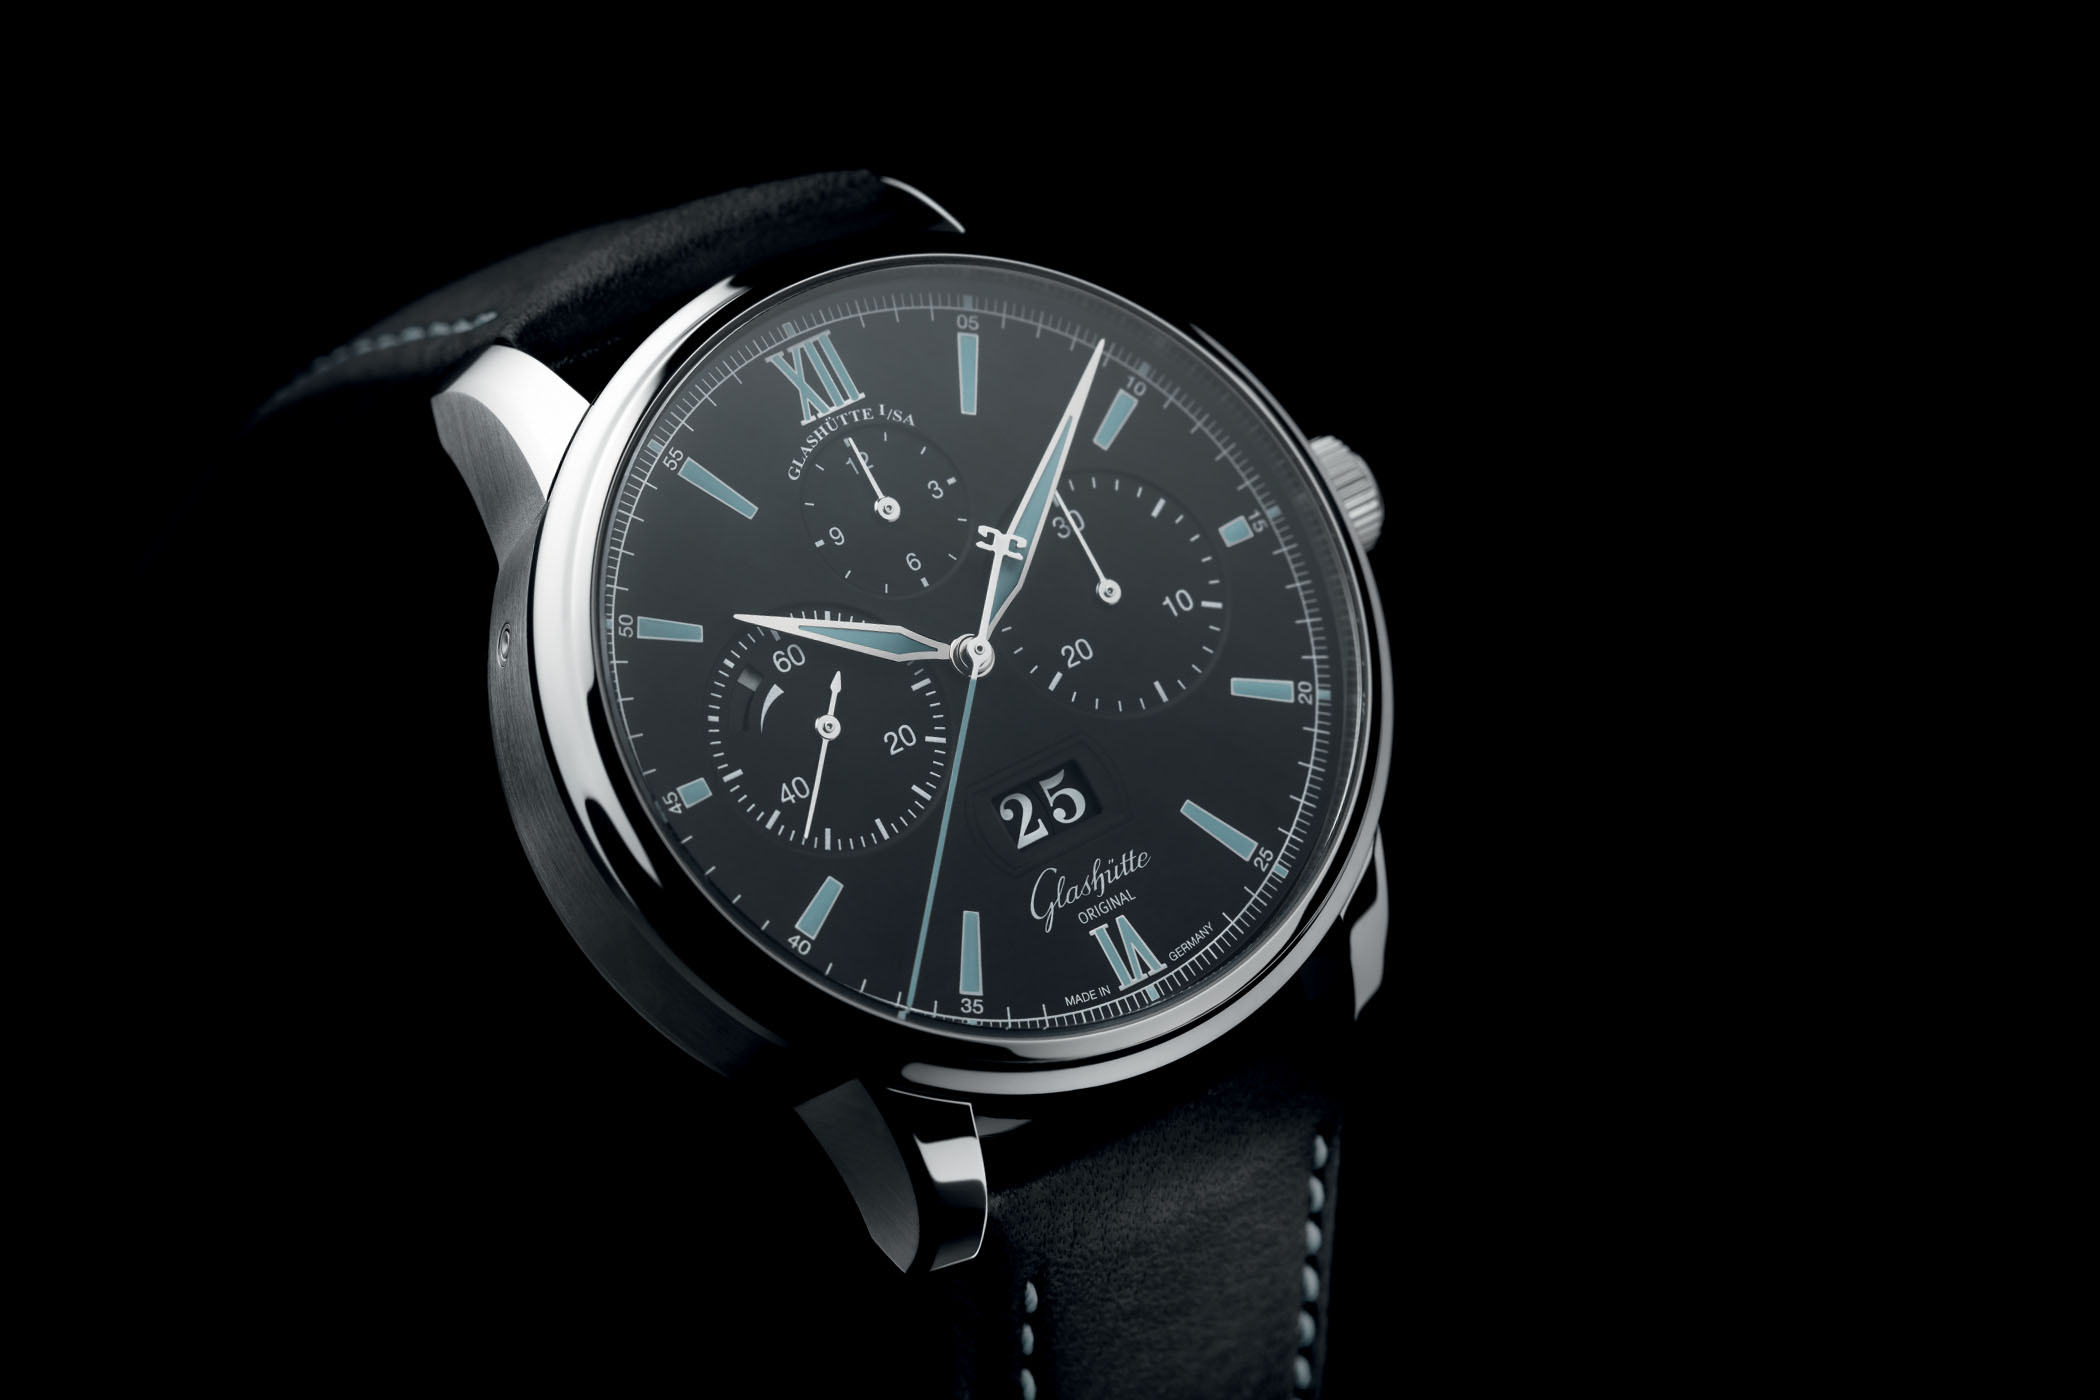 Glashutte Original Senator Chronograph Panorama Date Steel Black Dial - Baselworld 2017